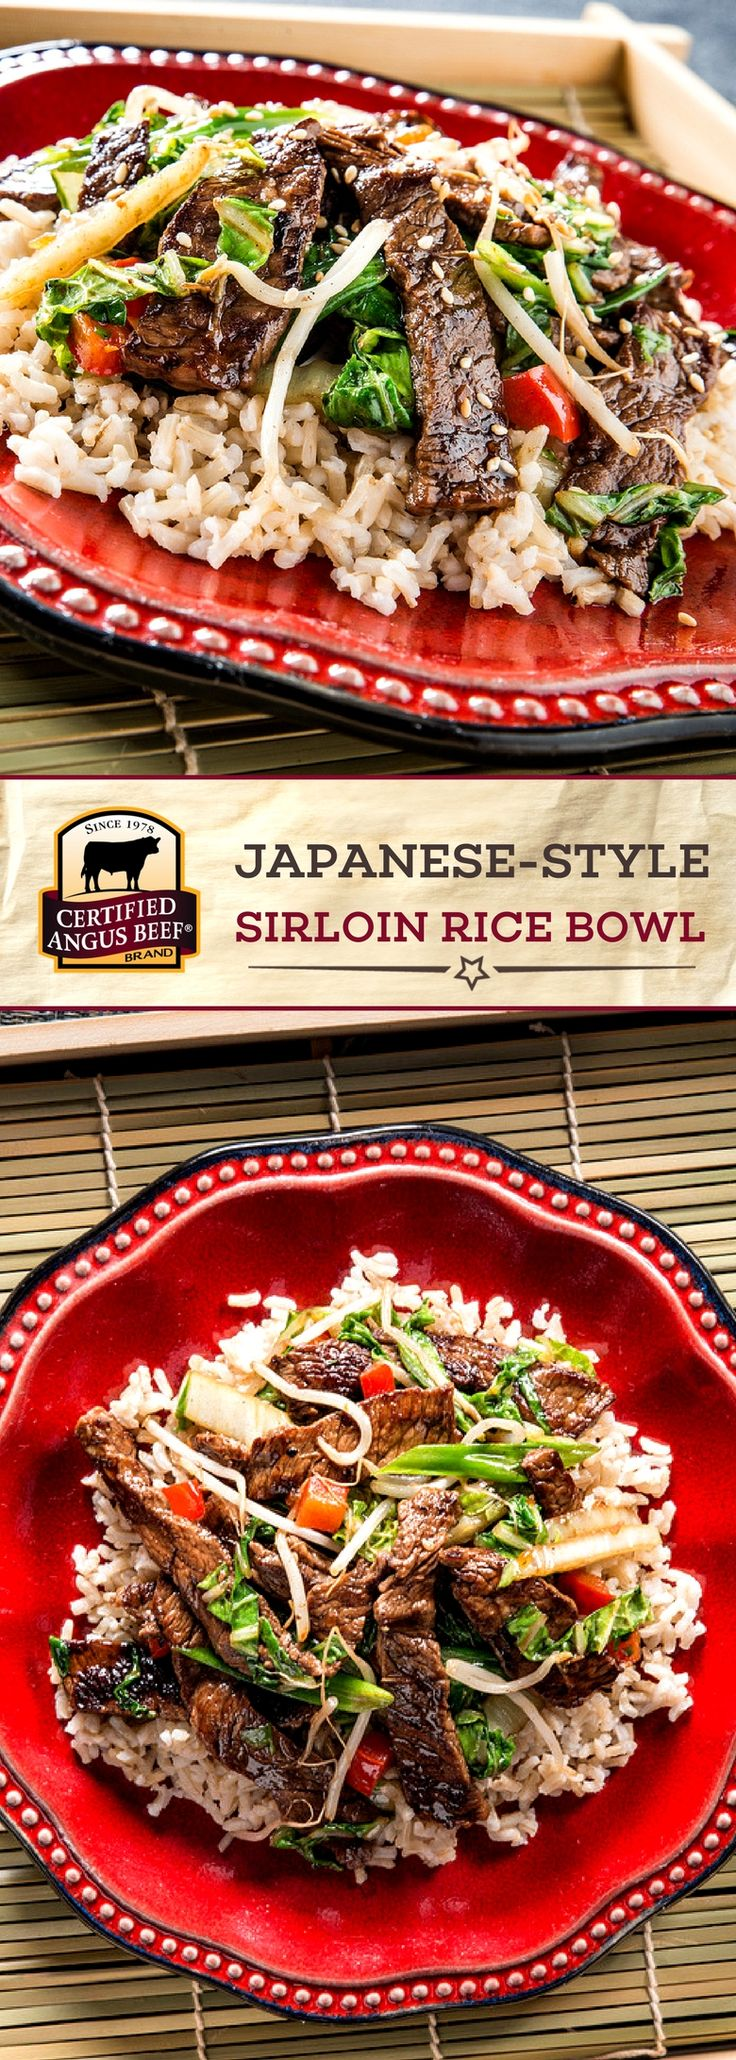 Certified Angus Beef®️️️️️ brand Japanese-style sirloin rice bowl is an EASY recipe packed with DELICIOUS flavors! The best sirloin steak is cooked with cabbage, peppers and sprouts, and then is finished with a soy sauce, sugar, sake and sesame oil sauce for a deeply FLAVORFUL dish! Serve over your favorite rice for a SIMPLE, tasty meal. #bestangusbeef #certifiedangusbeef #beefrecipe #easyrecipes #ricebowl